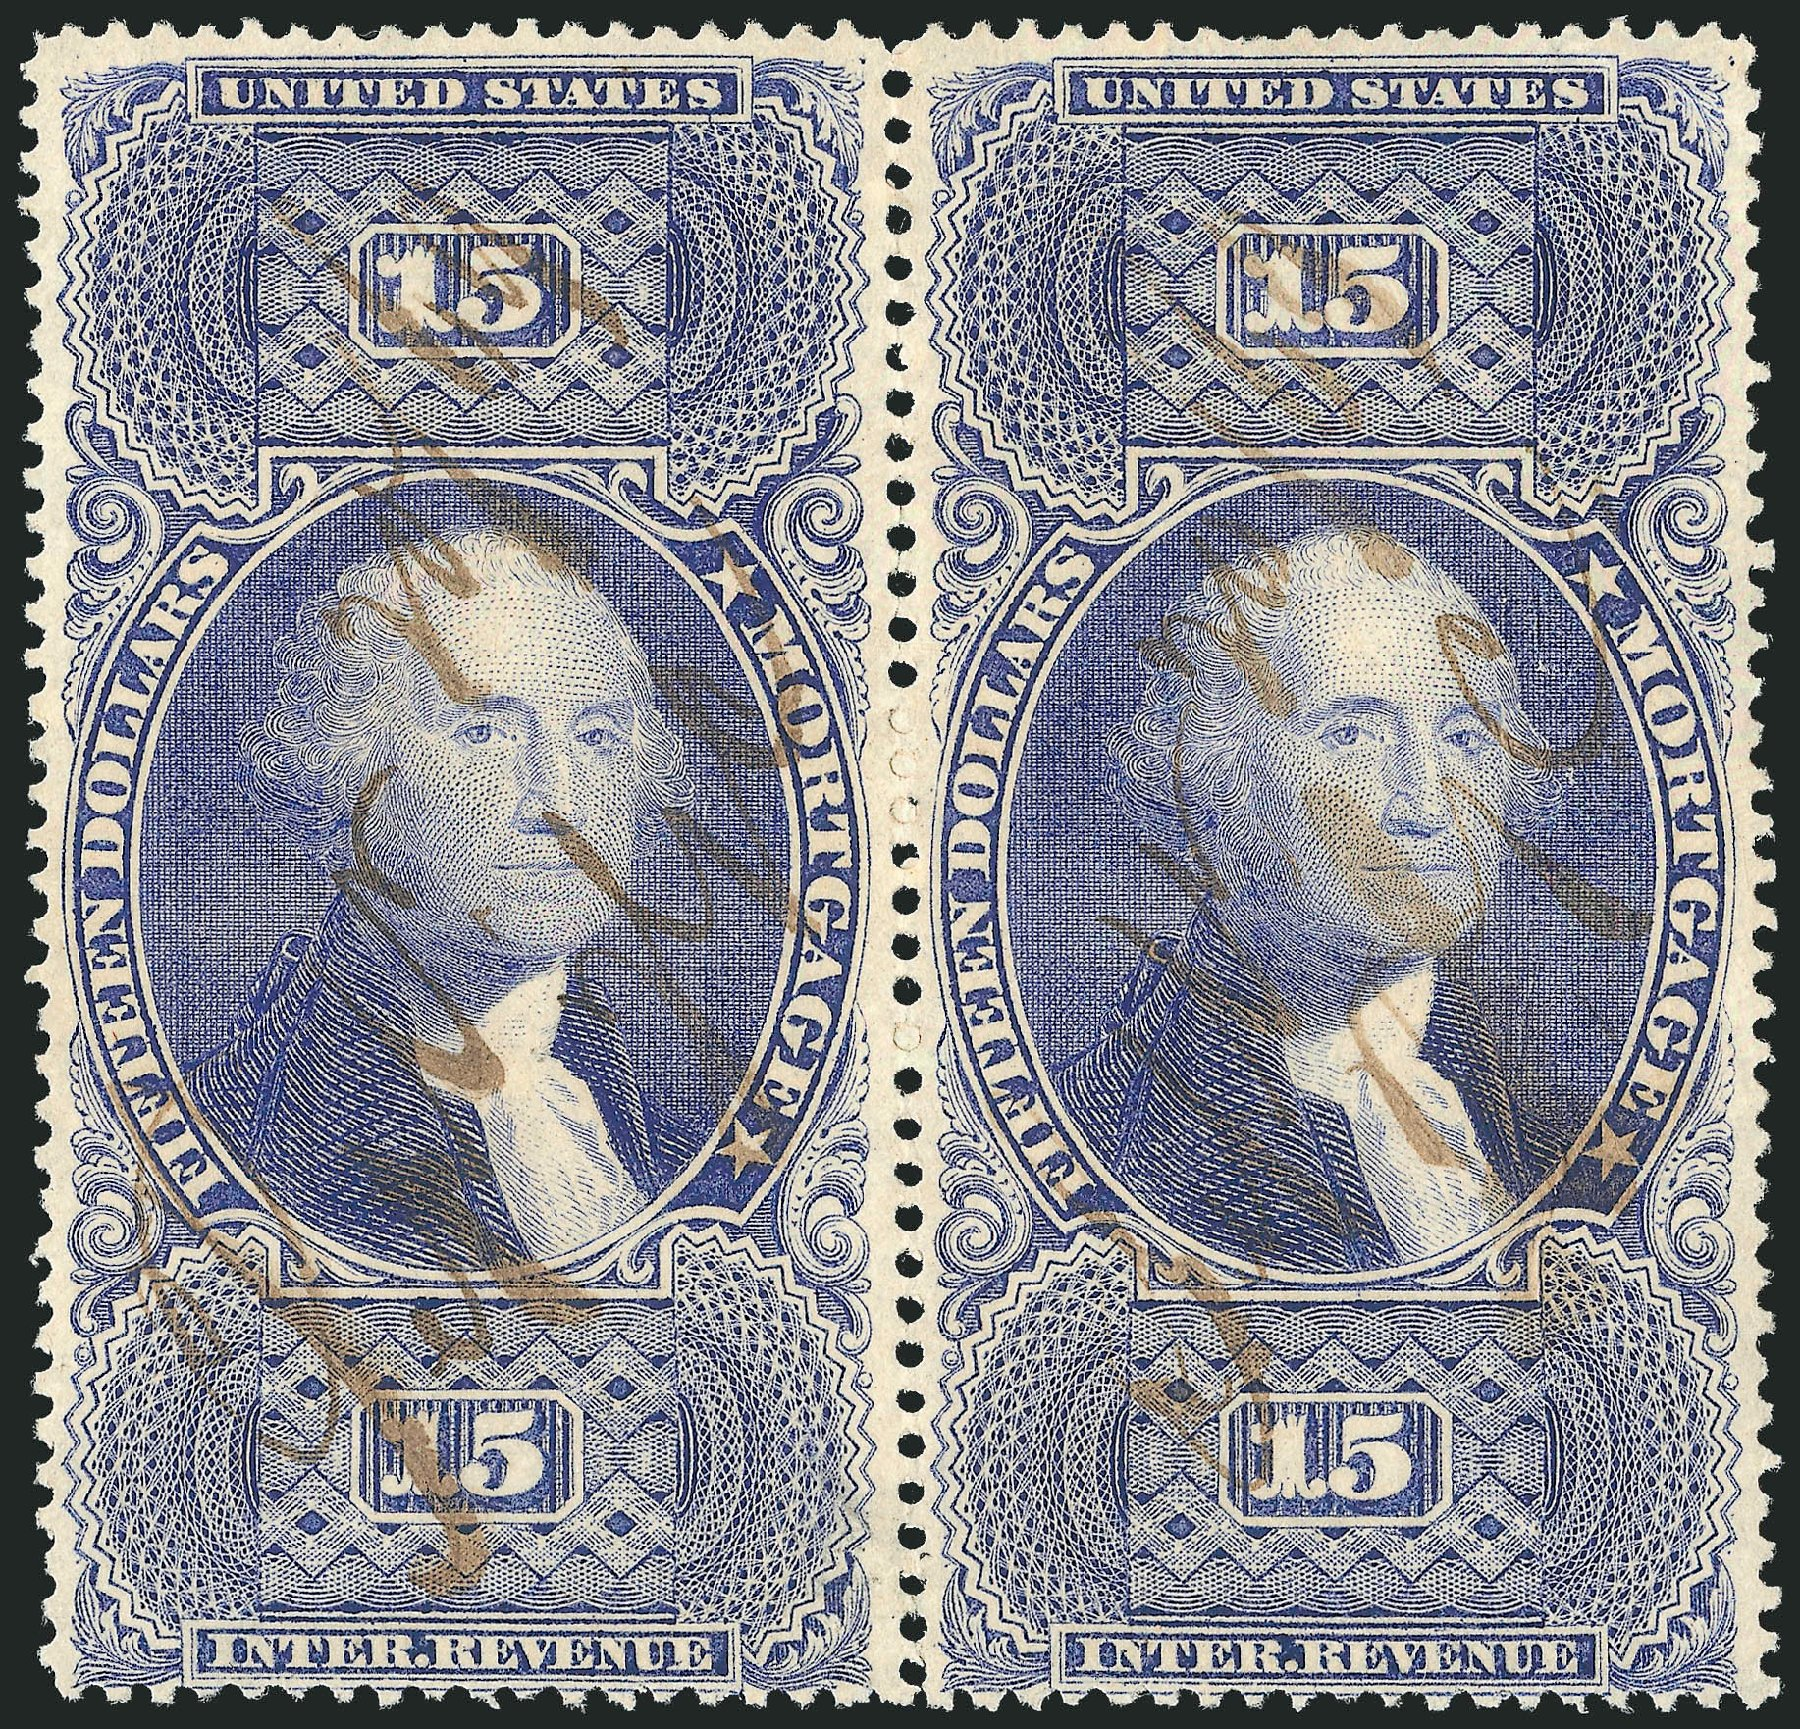 Price of US Stamp Scott # R97: US$15.00 1862 Revenue Mortgage. Robert Siegel Auction Galleries, Dec 2014, Sale 1089, Lot 308